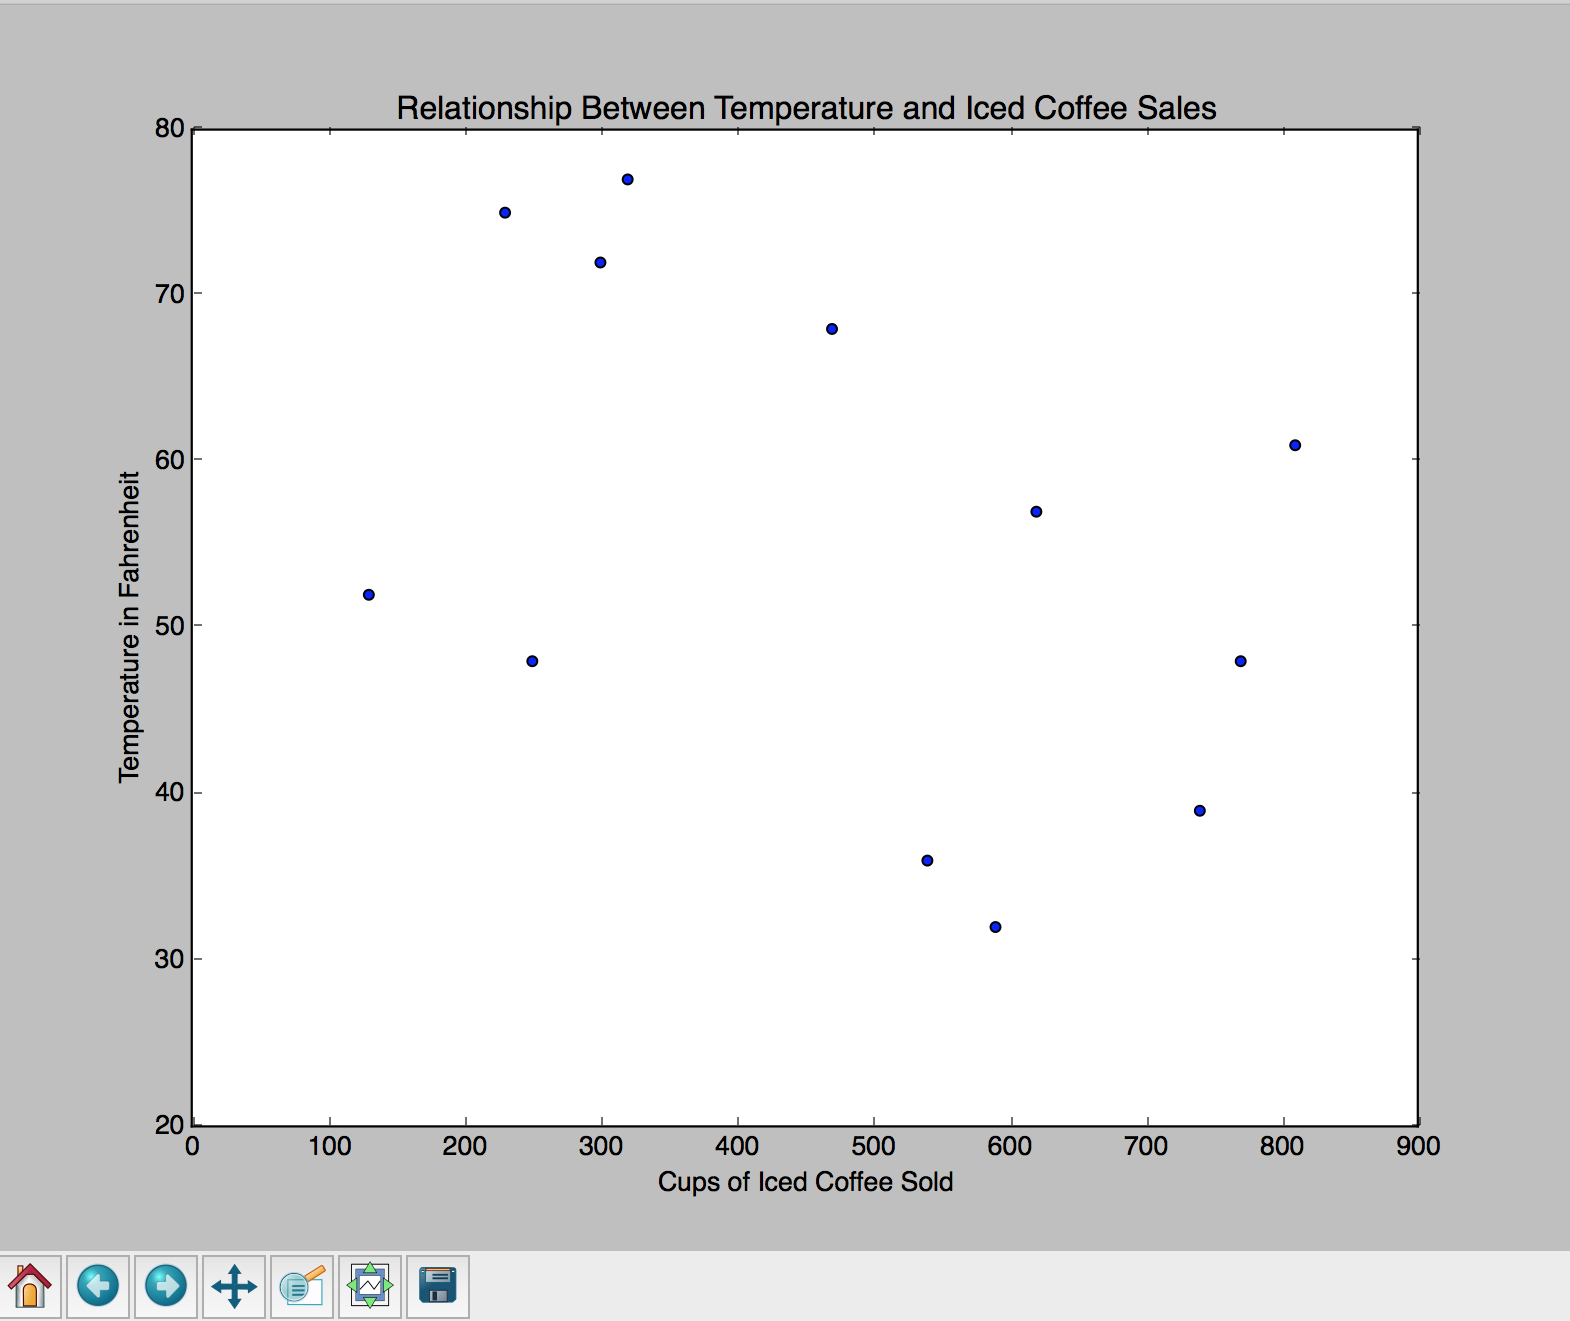 Alt Scatter plot with a title and X/Y labels.